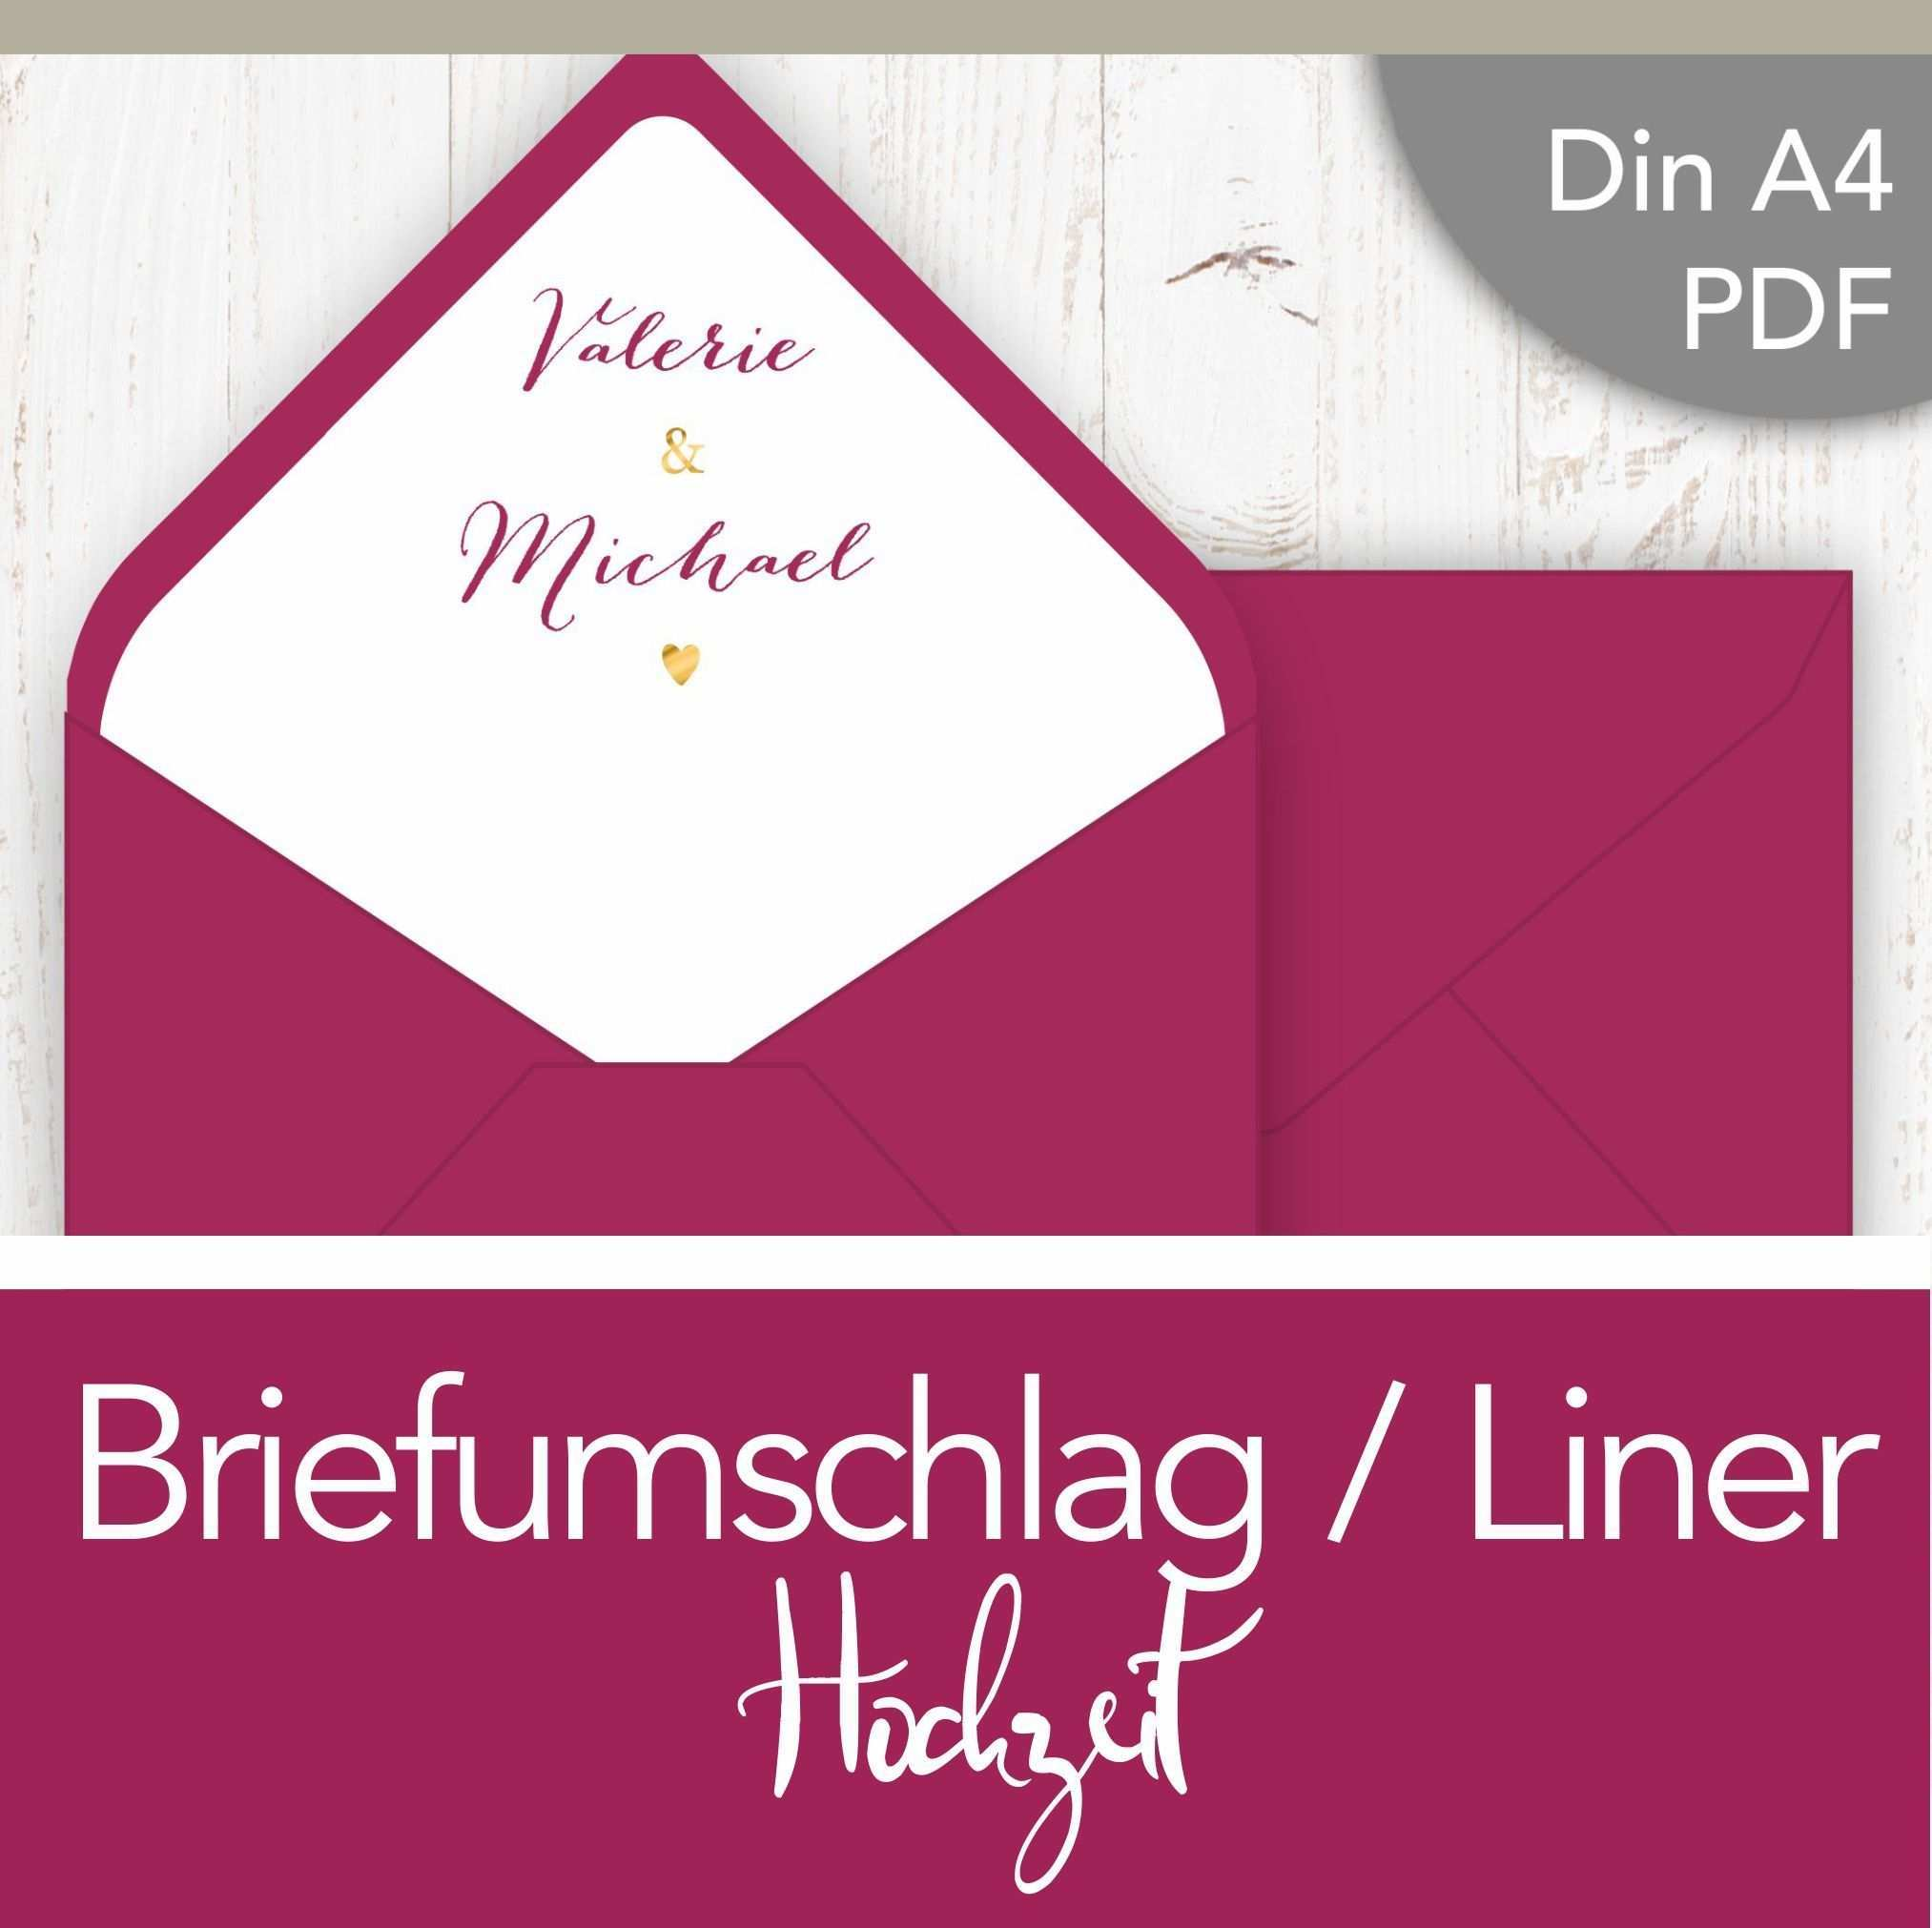 Liner Inlet Briefumschlag B6 Printable Download Schicker Briefumschlag Liner Inlet Im Boho Stil Aus Der Boho Rot G In 2020 Briefumschlag Diy Umschlag Ausdrucken